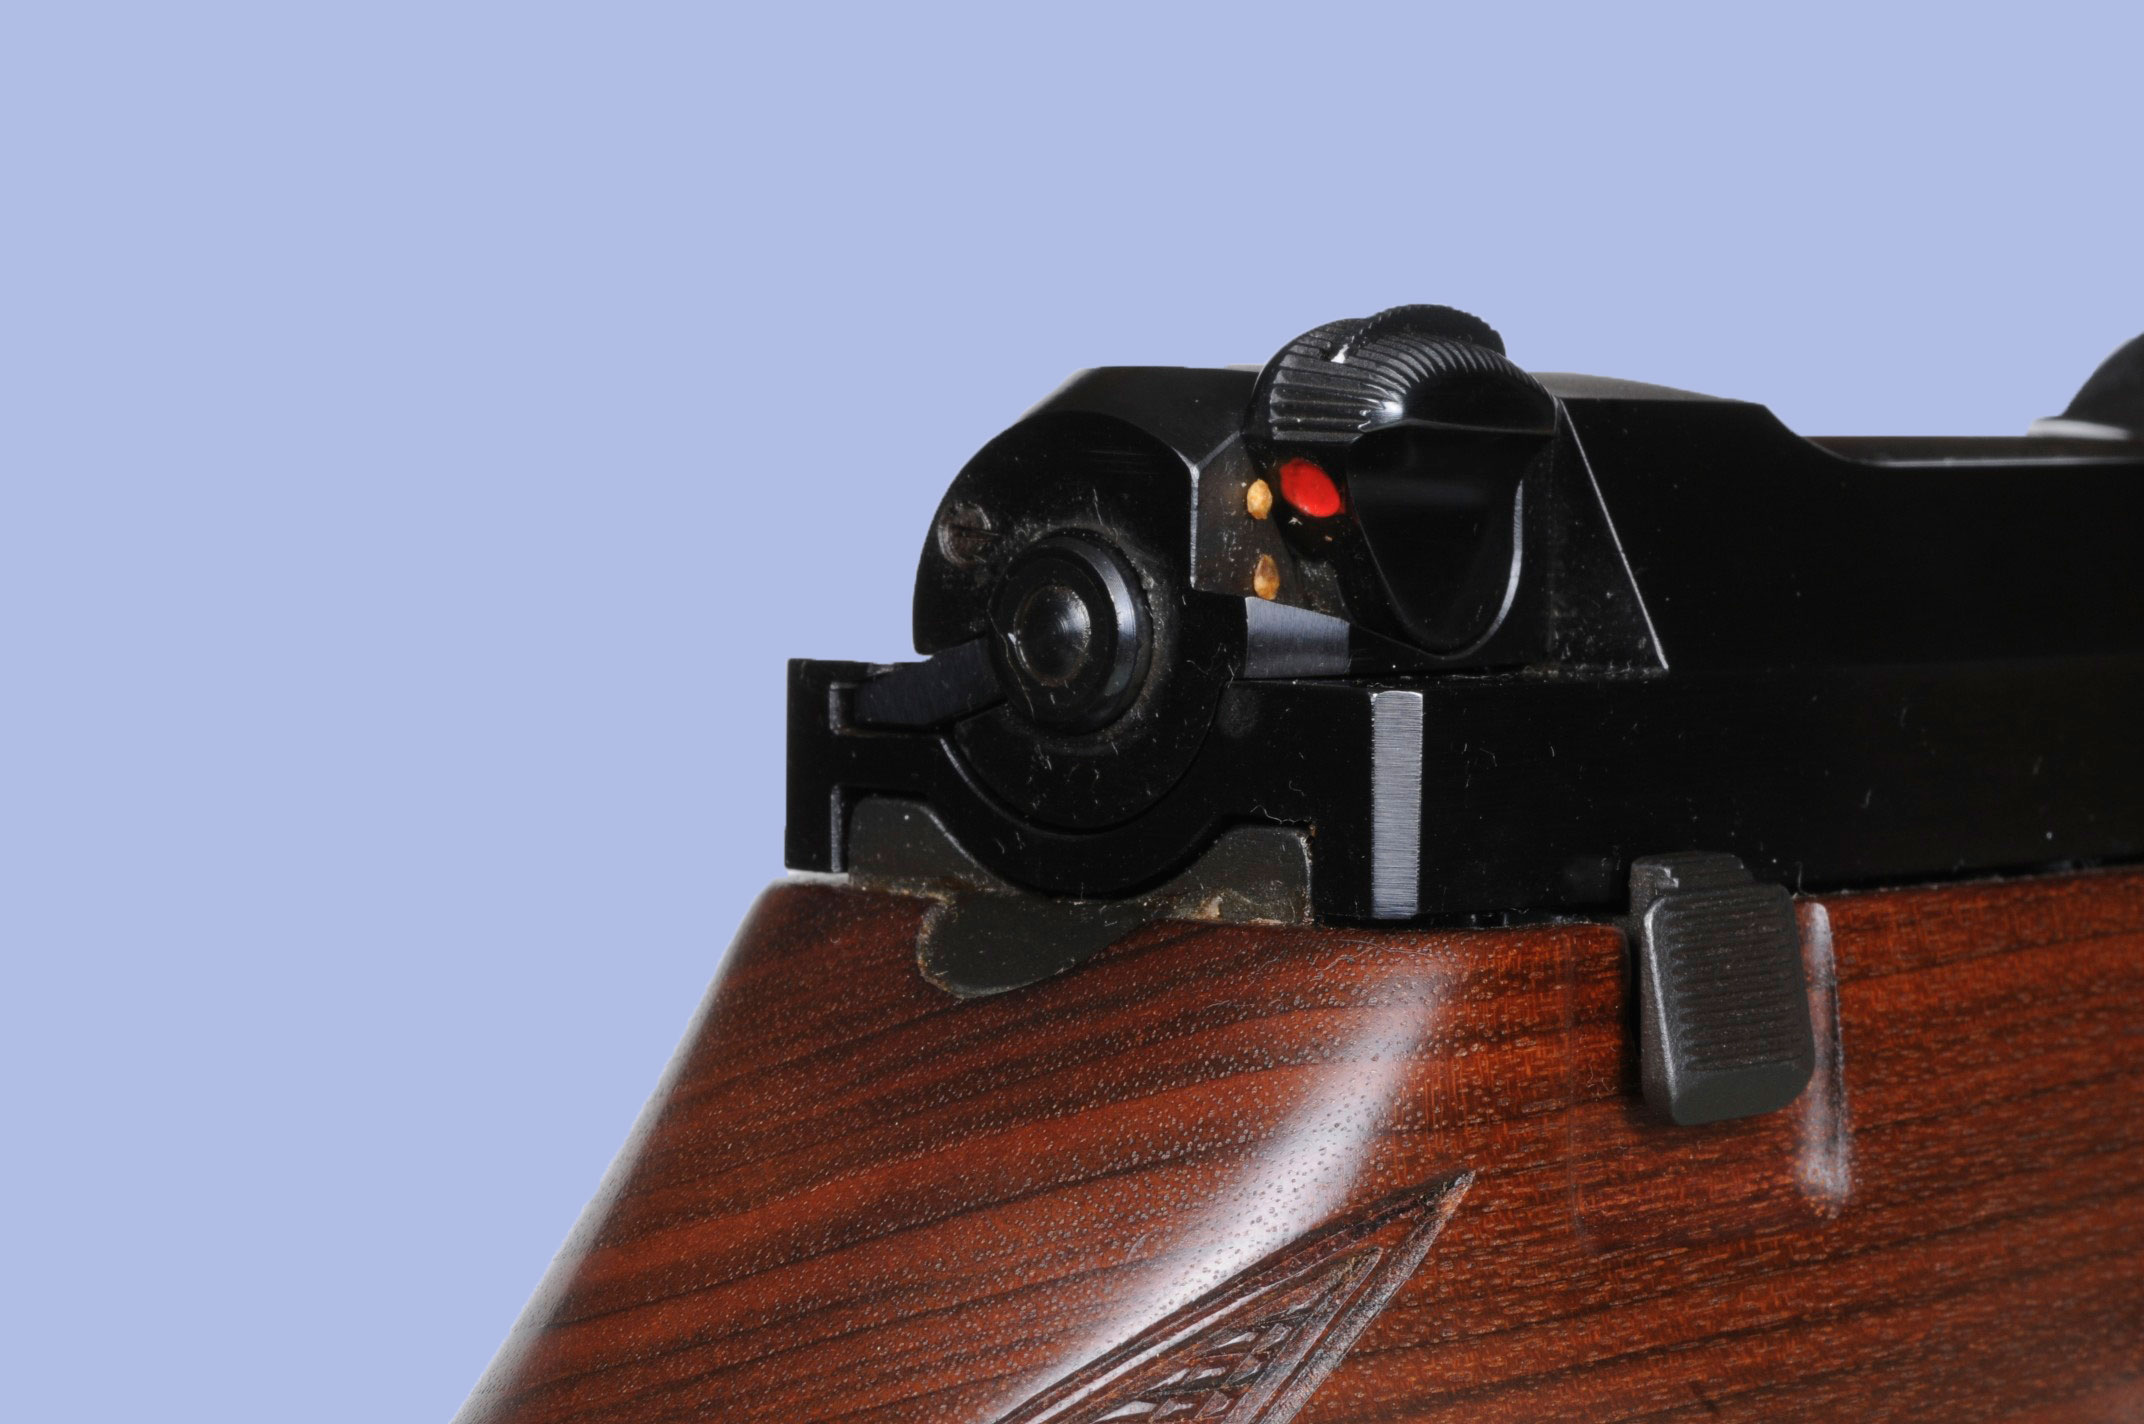 The safety catch of the Mauser 66. The locking button is visible at the top of the safety button. (Picture courtesy of armes.be)